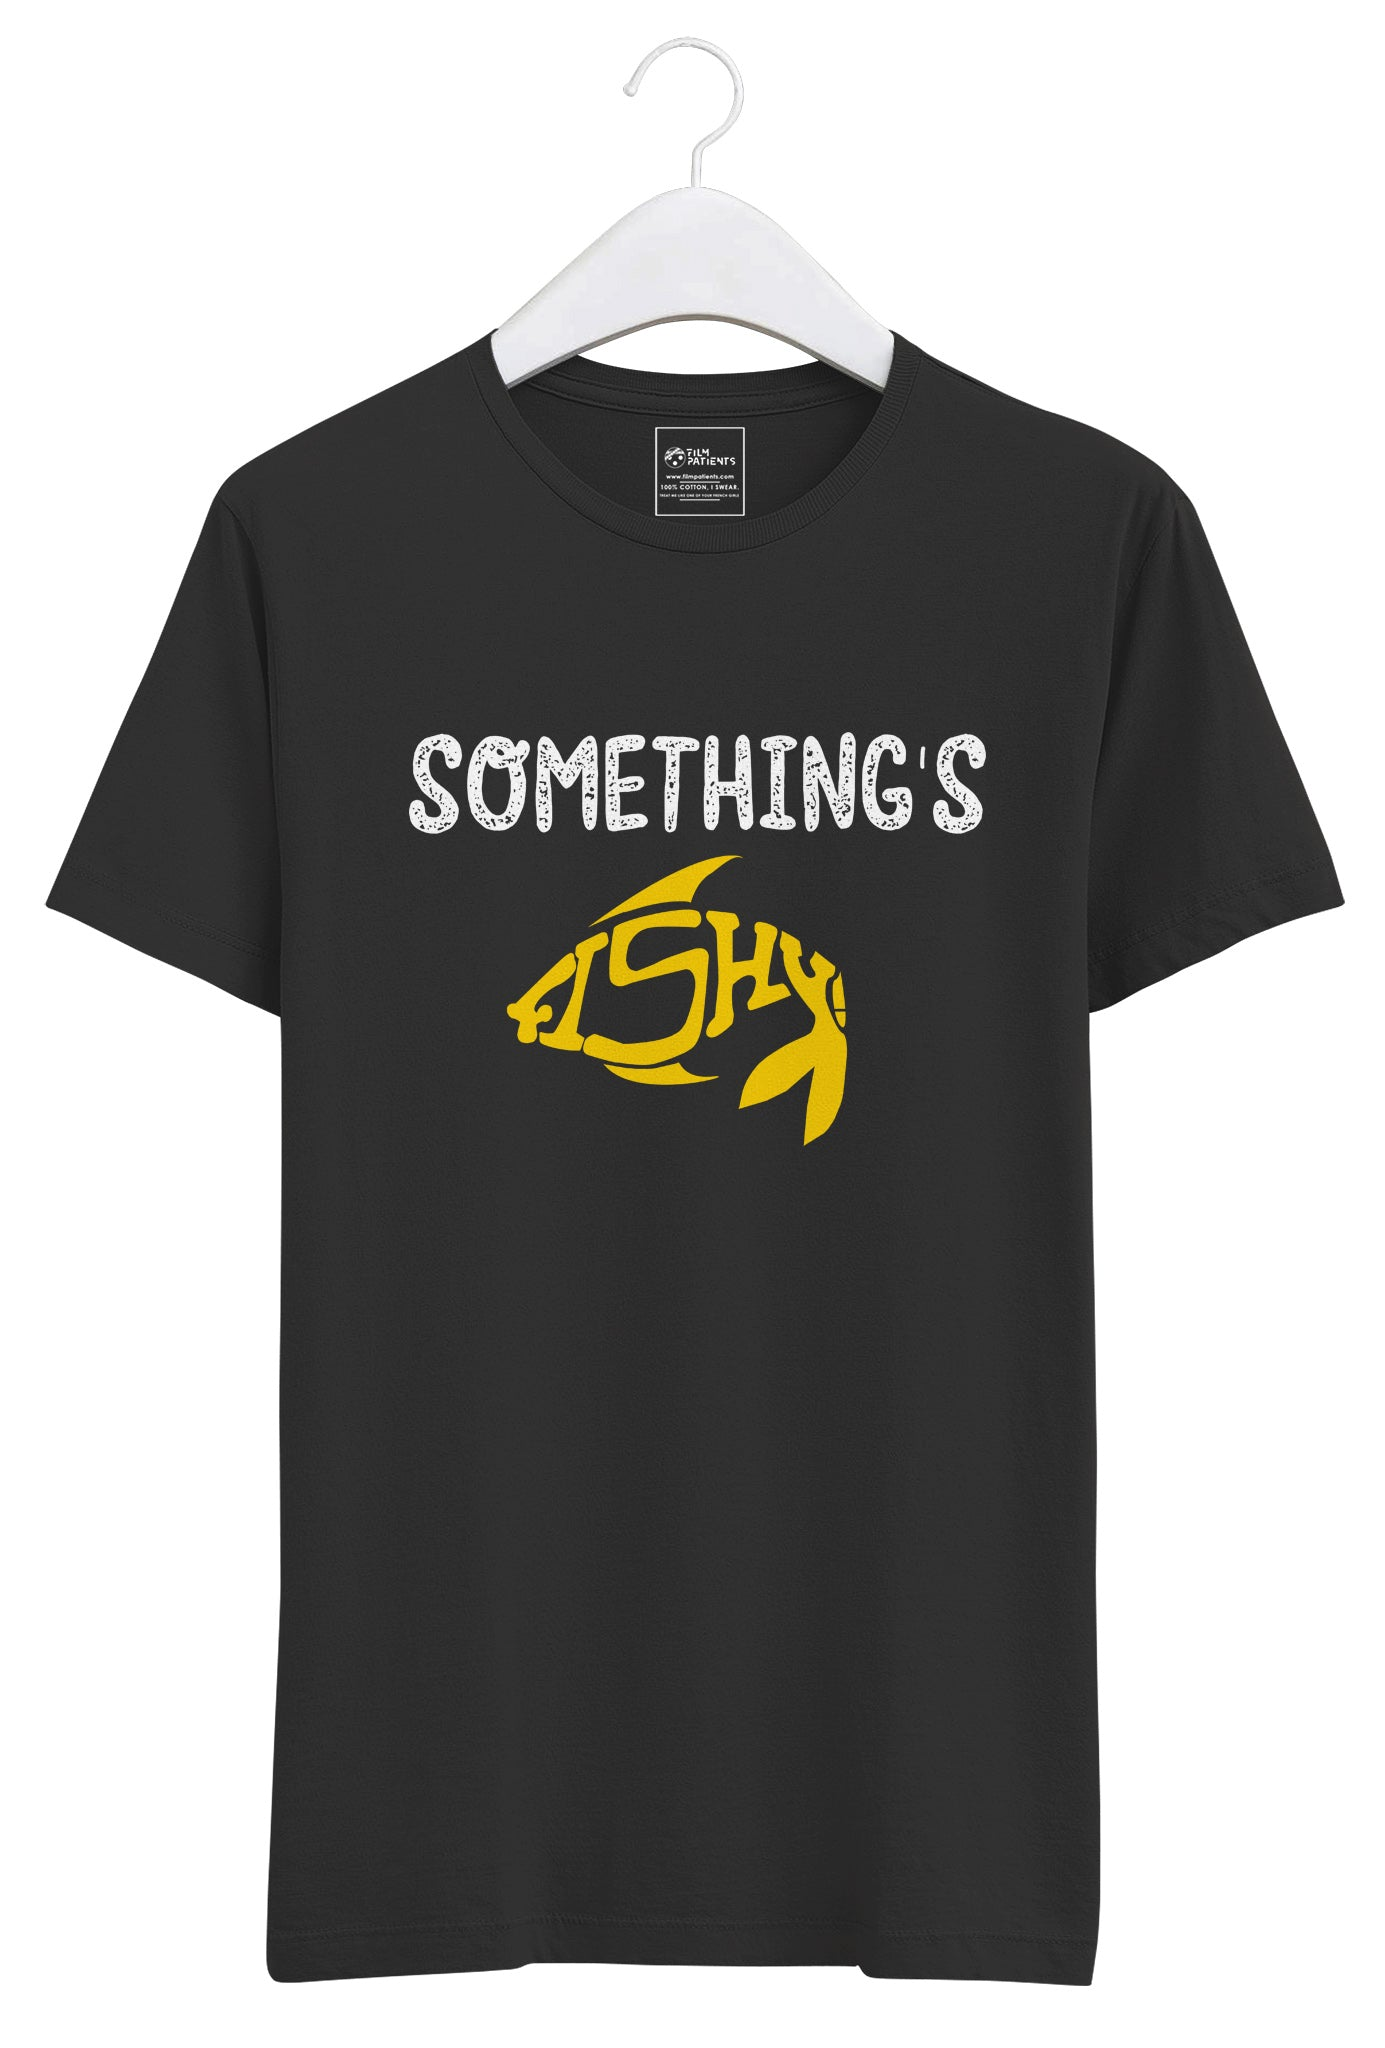 Something is Fishy Trending  Unisex T-shirt